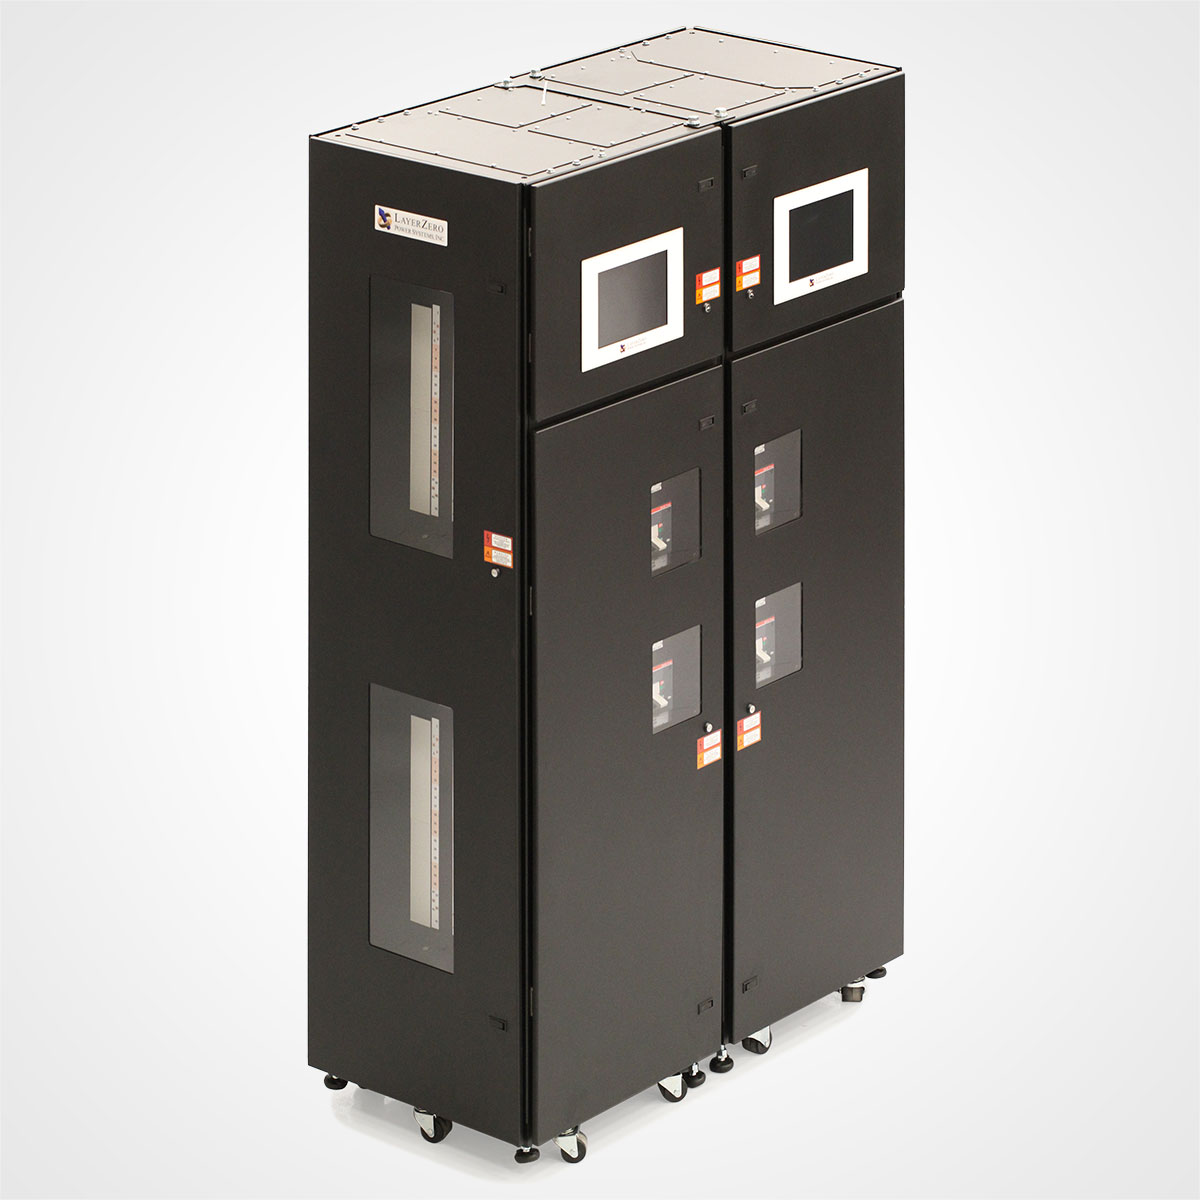 Two LayerZero Series 70: eRPP-FS Cabinets Side-By-Side.